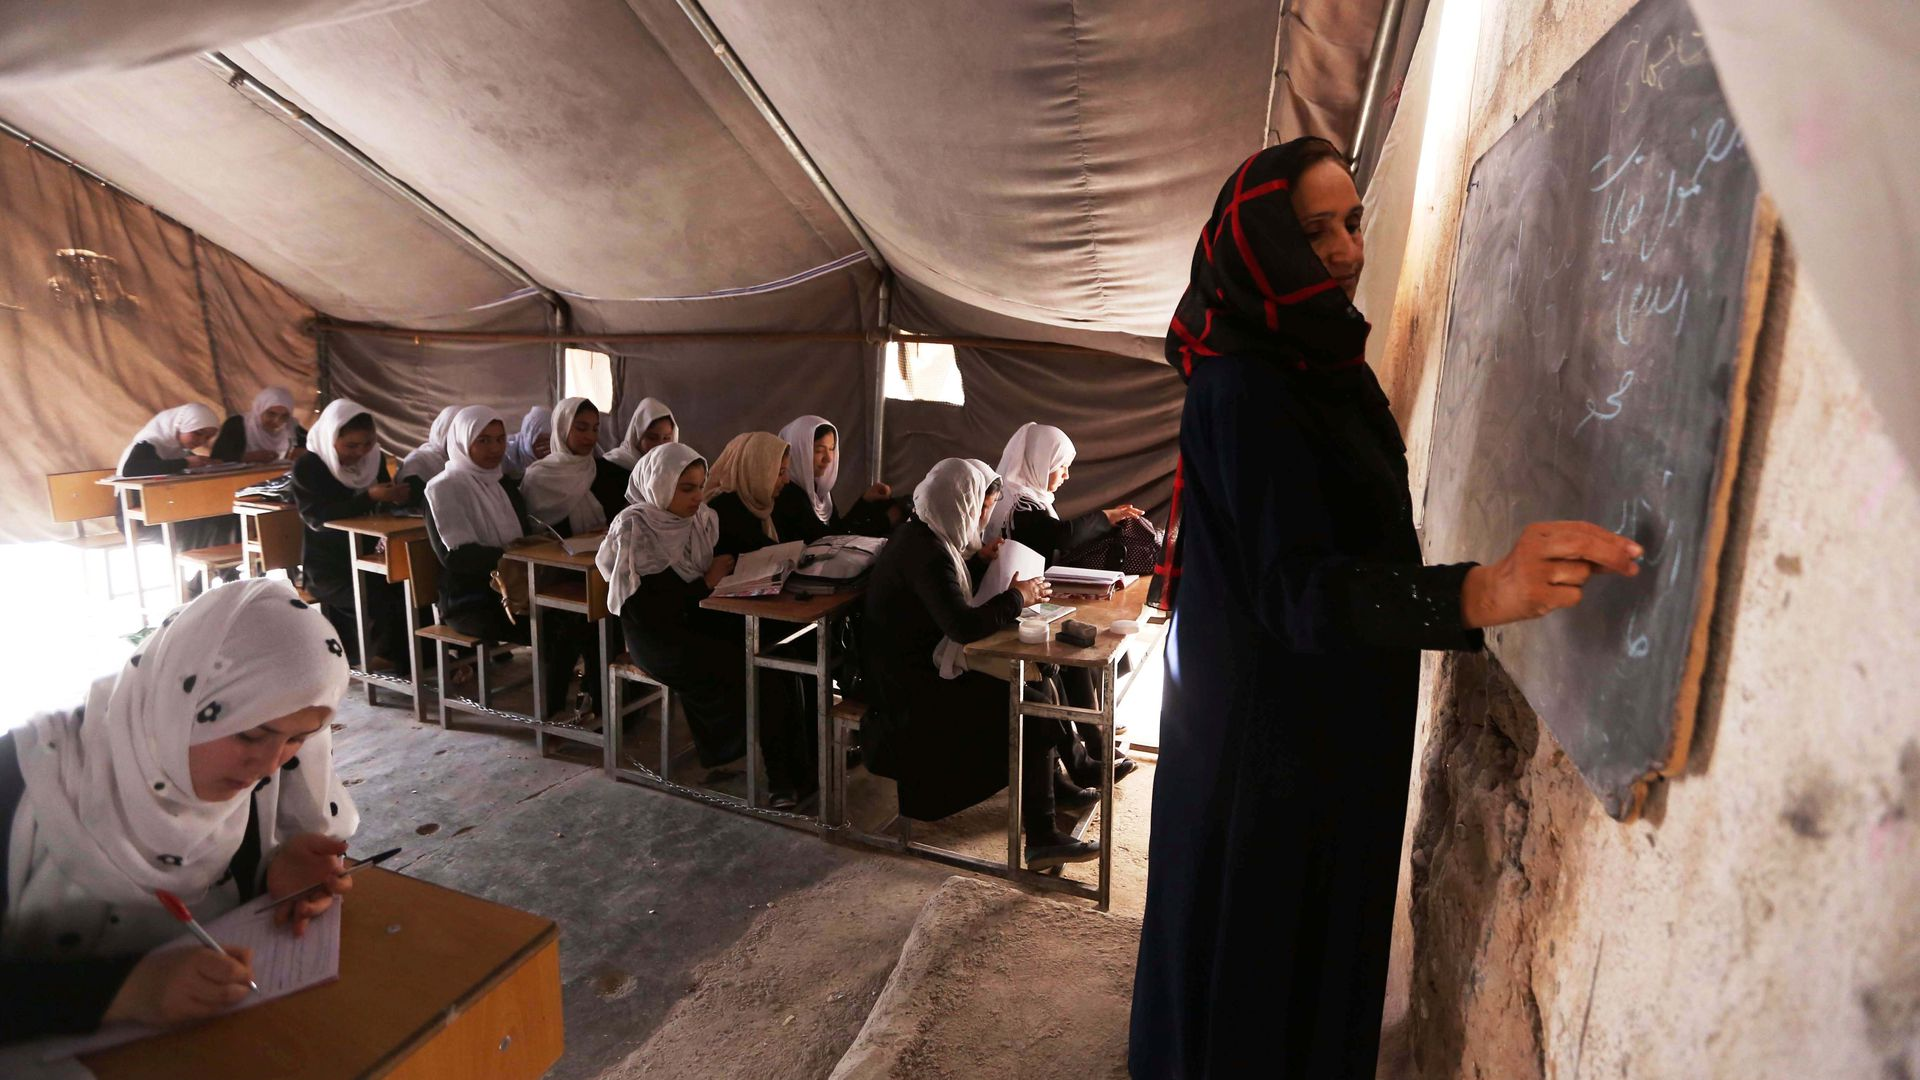 Afghan schoolgirls attend a class at a local school in Herat province in 2017.